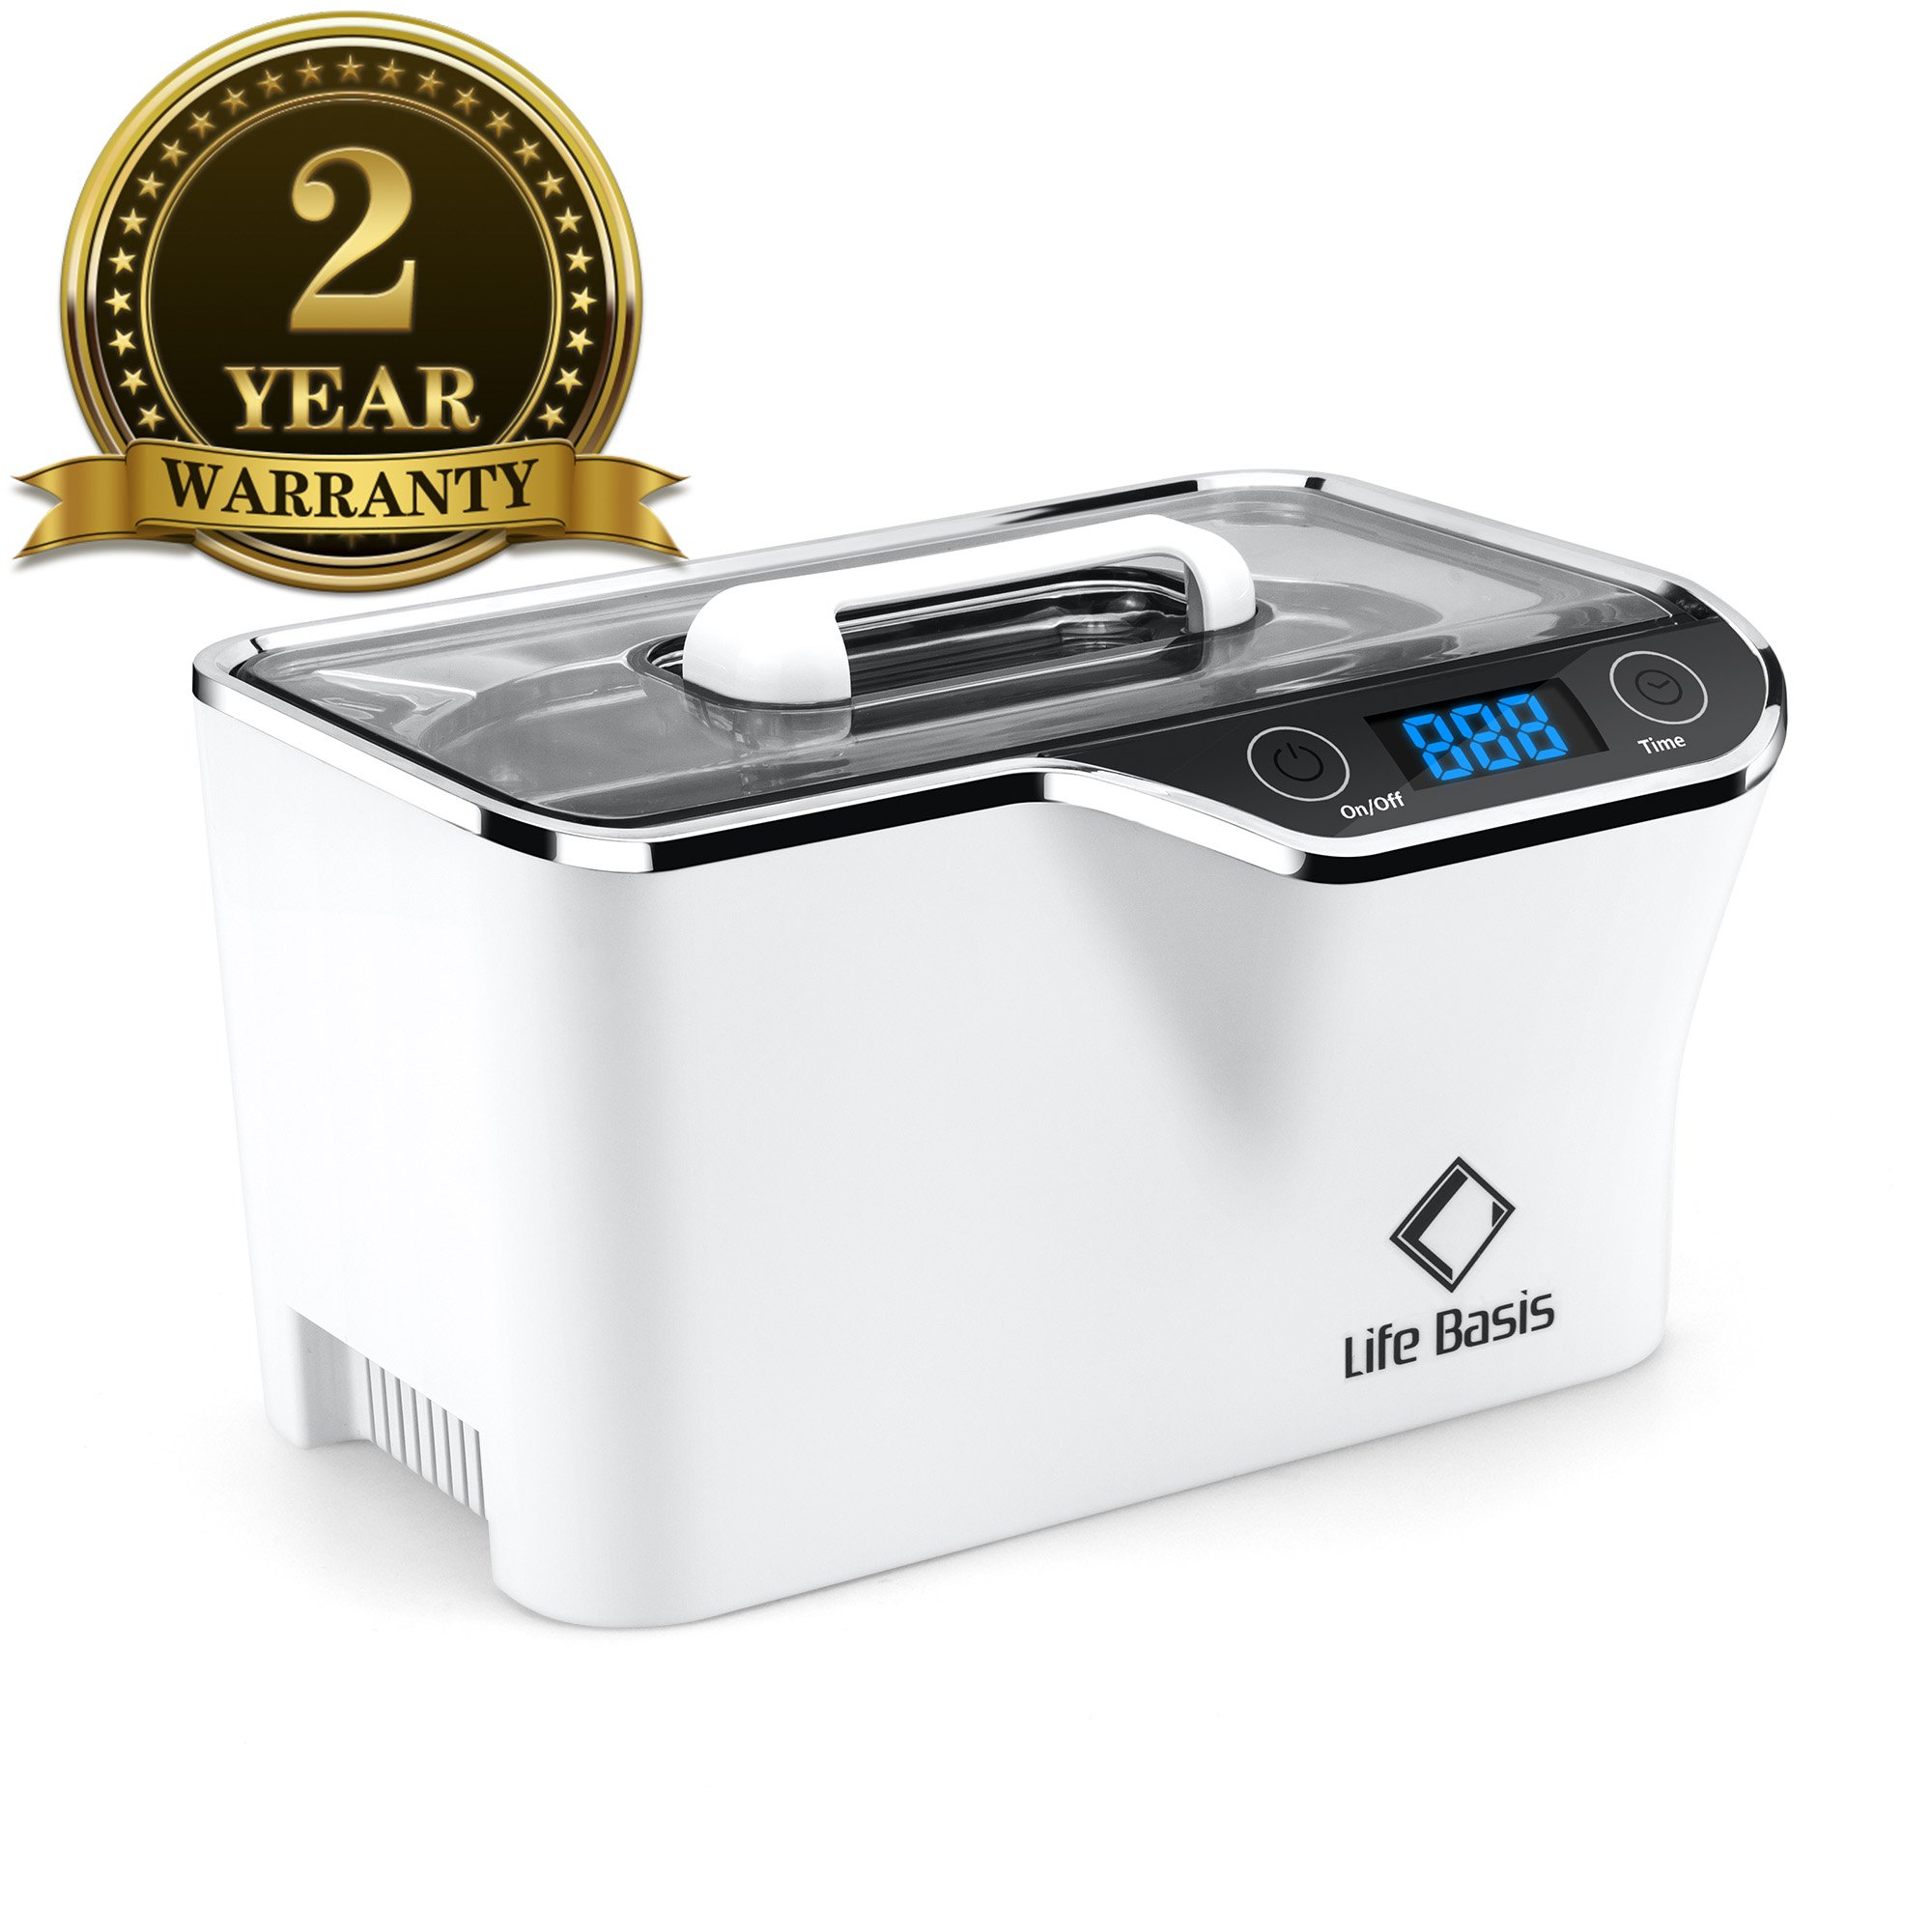 Life Basis Professional Ultrasonic Jewelry Cleaner with Digital 750ML Automatic Timer for Eyeglasses Rings Coins for Home White